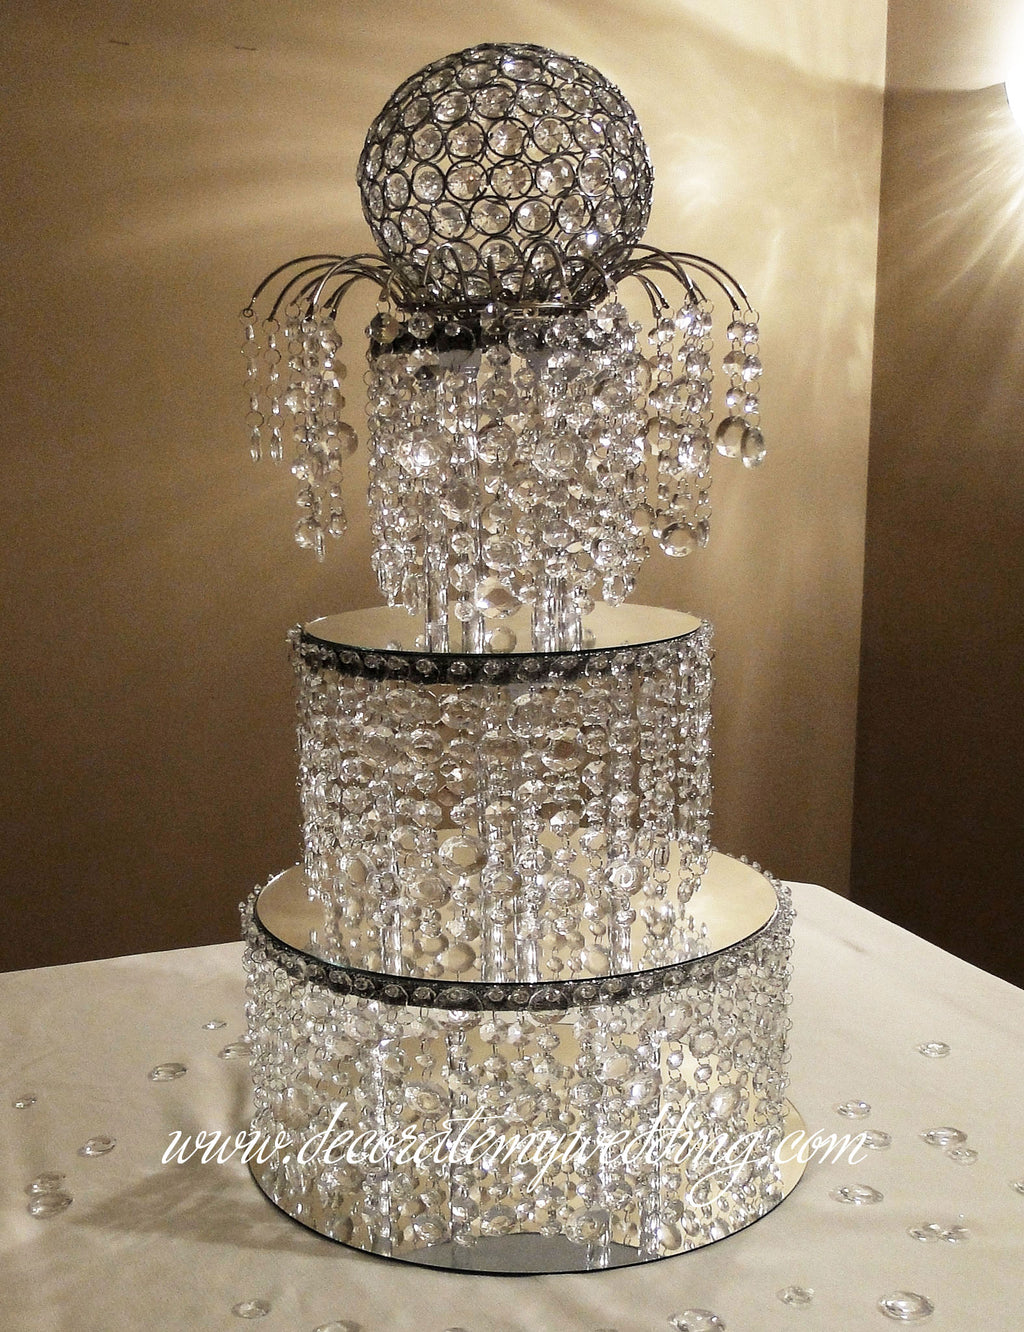 Three stacked crystal tiers are topped with a matching arch topper and a beaded globe.